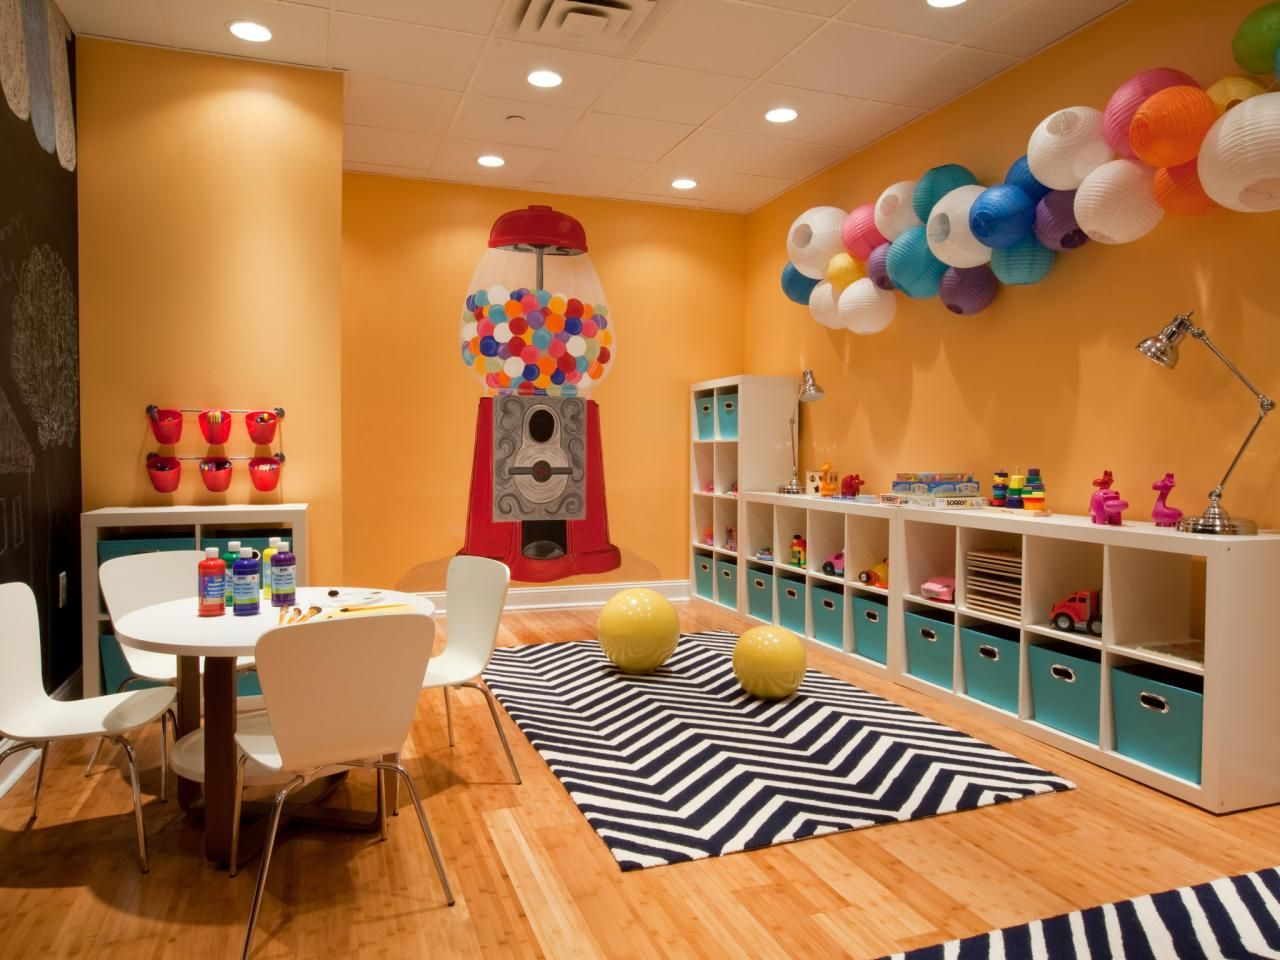 Amazing Kids Rooms   Gallery Of Amazing Kids Bedrooms And Playrooms   Kids  Room Ideas For